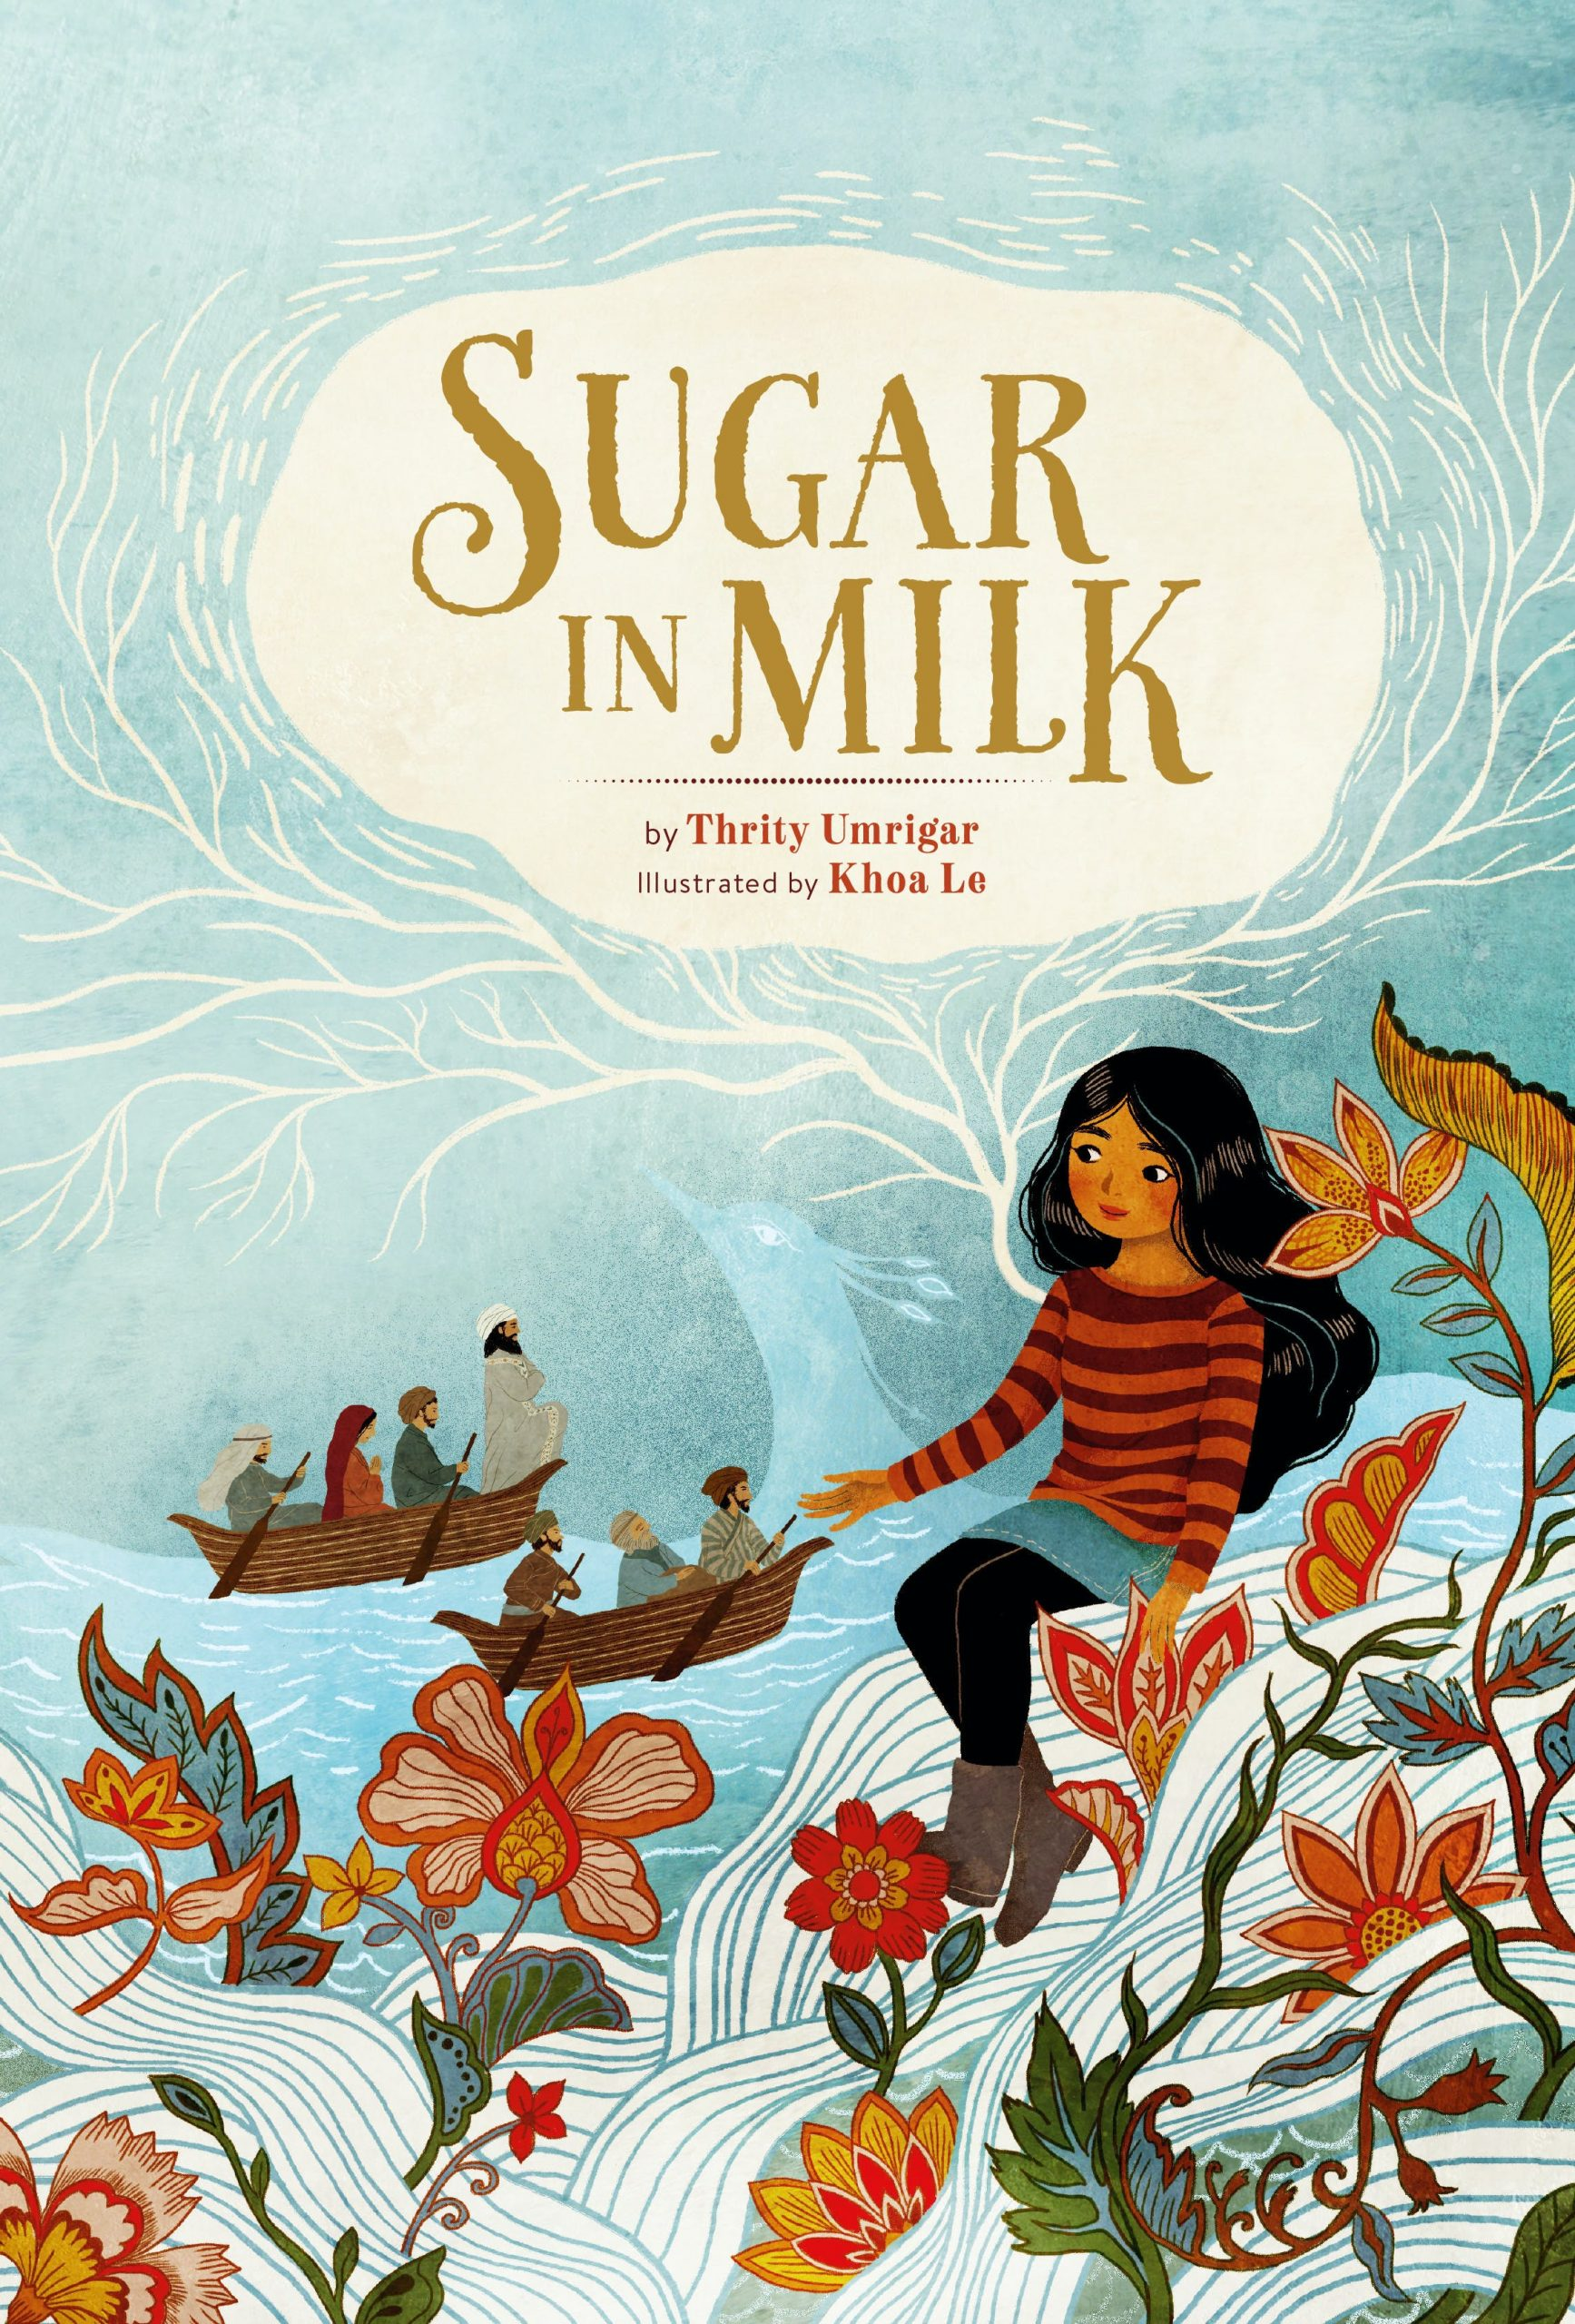 Sugar in Milk by Thrity Umrigar